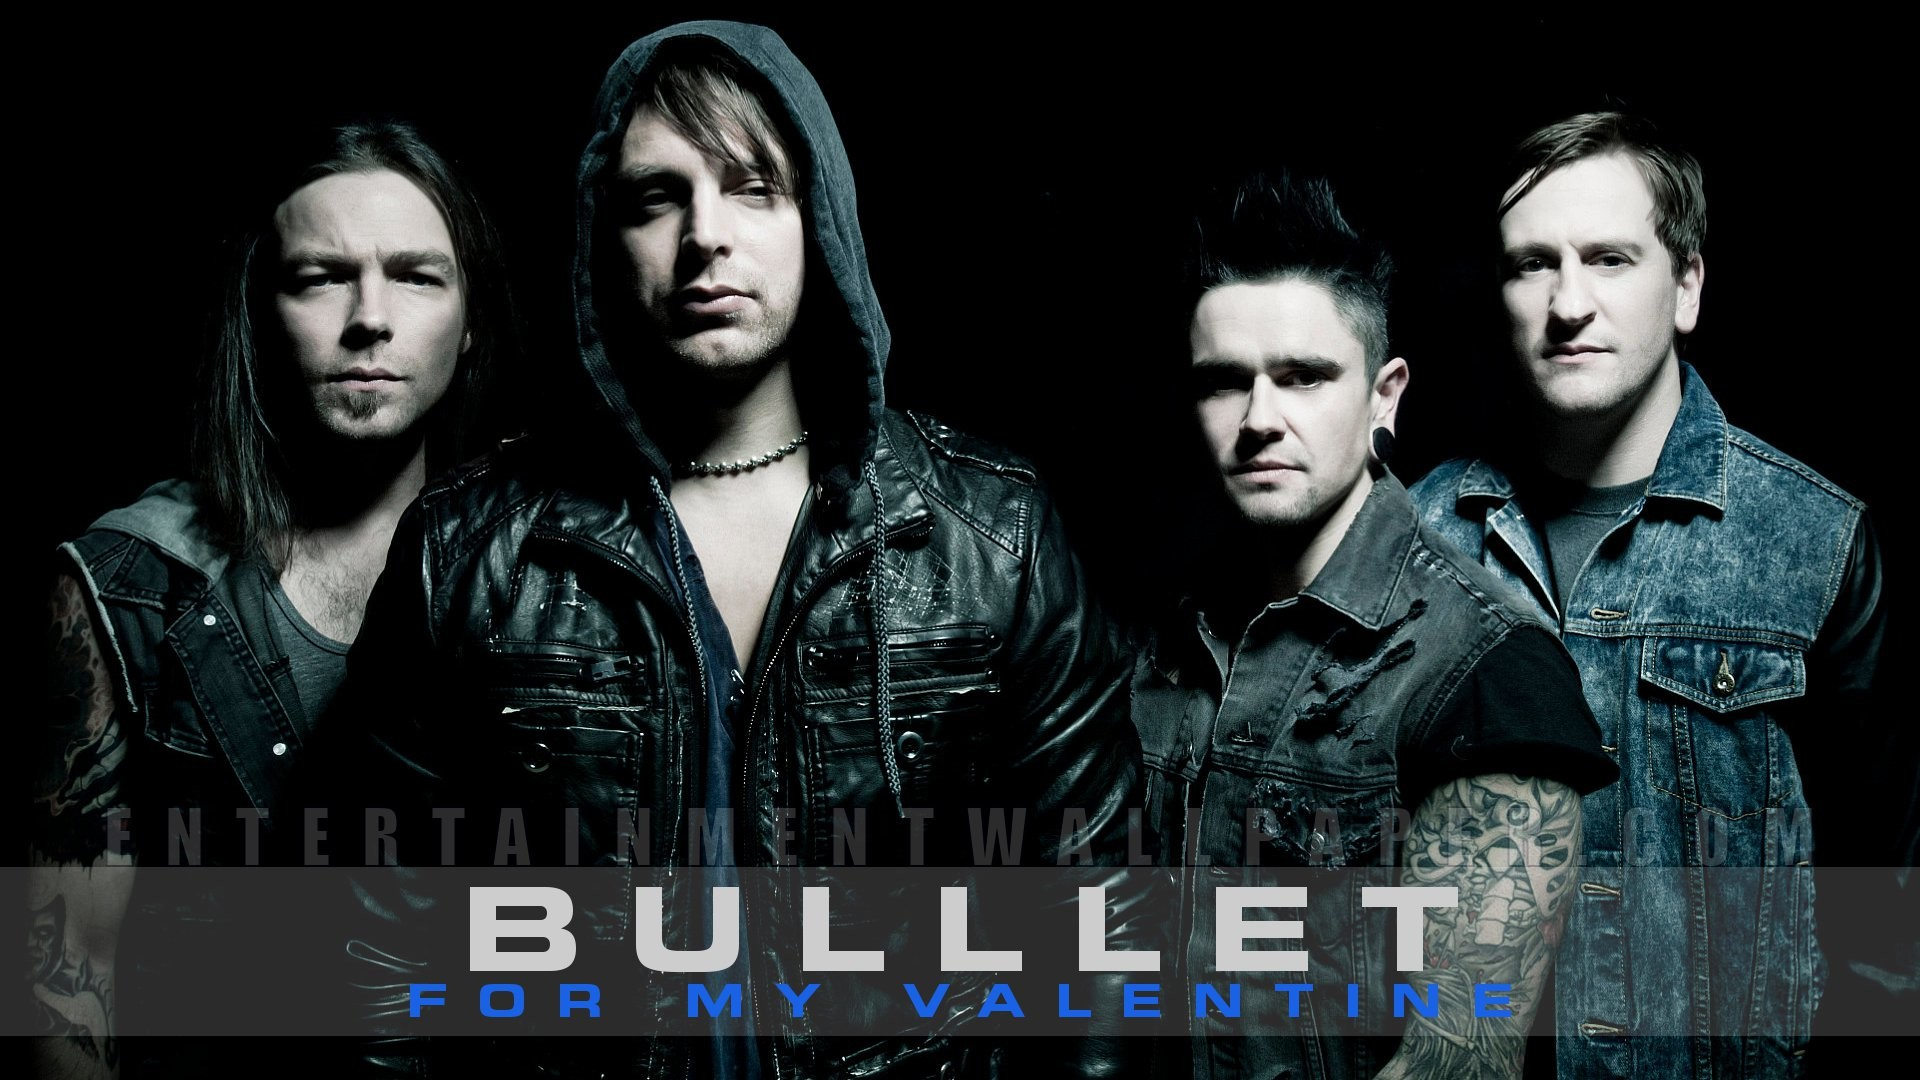 Bullet for My Valentine Ringtones Free for iPhone and Android